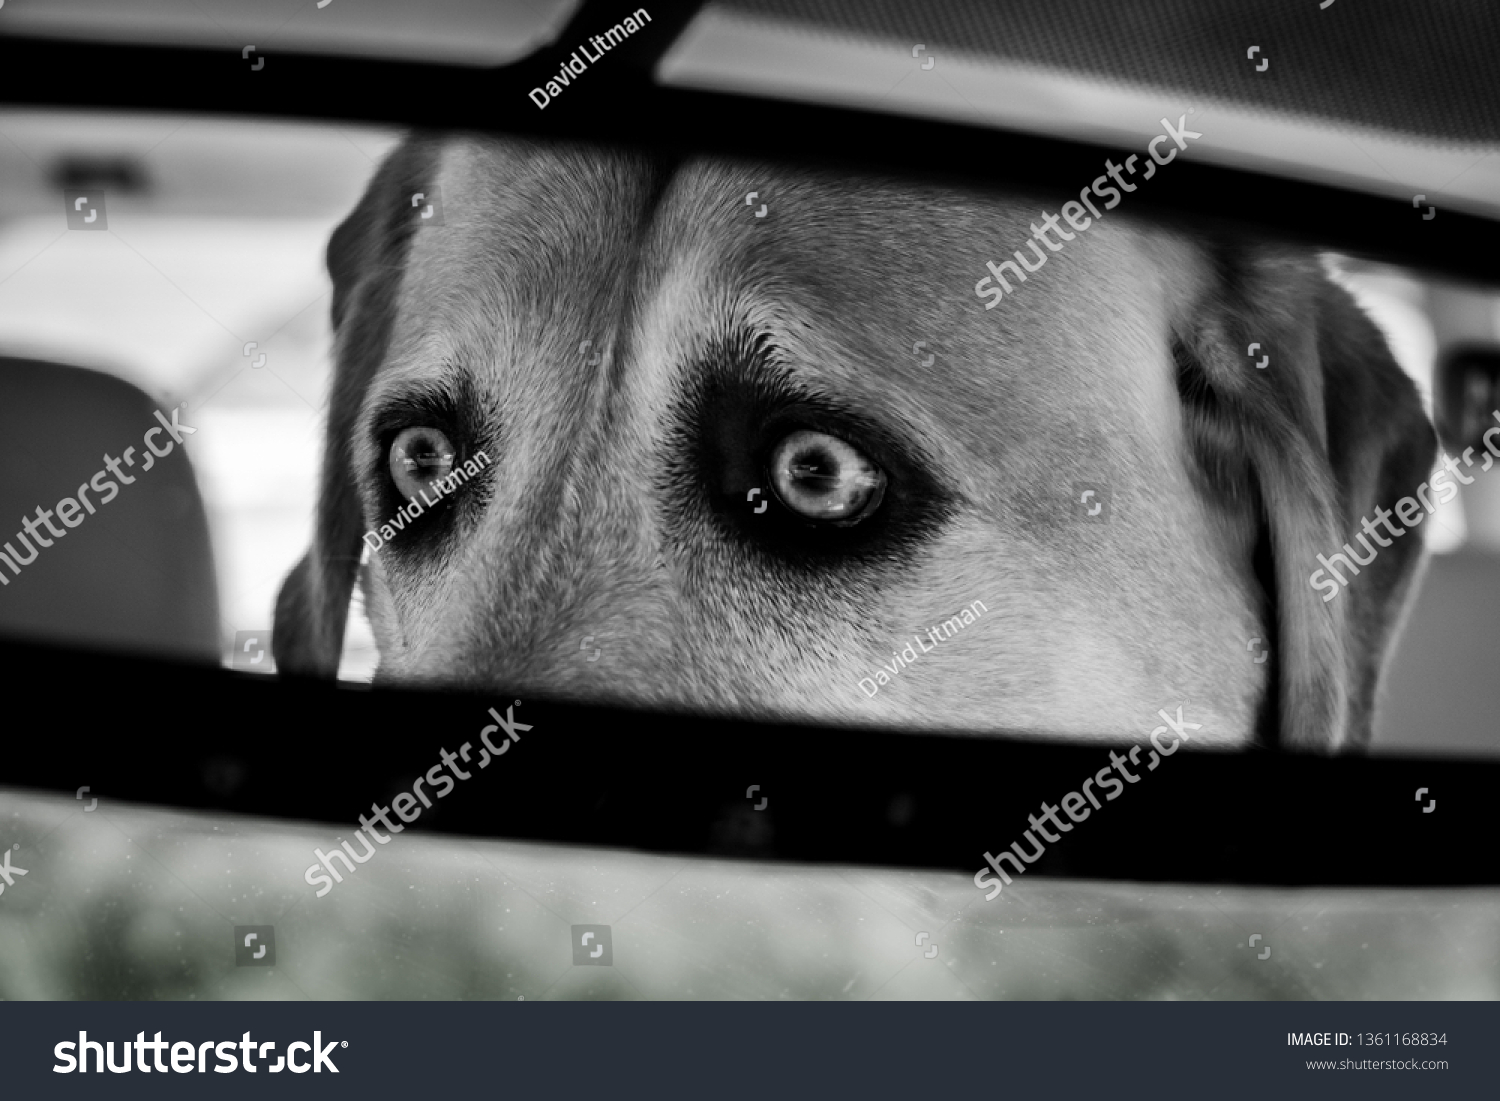 A yellow Labrador Retriever (Lab) with wide eyes concentrates intently on the road conditions ahead, as viewed in the rear view mirror of her car, in black and white.